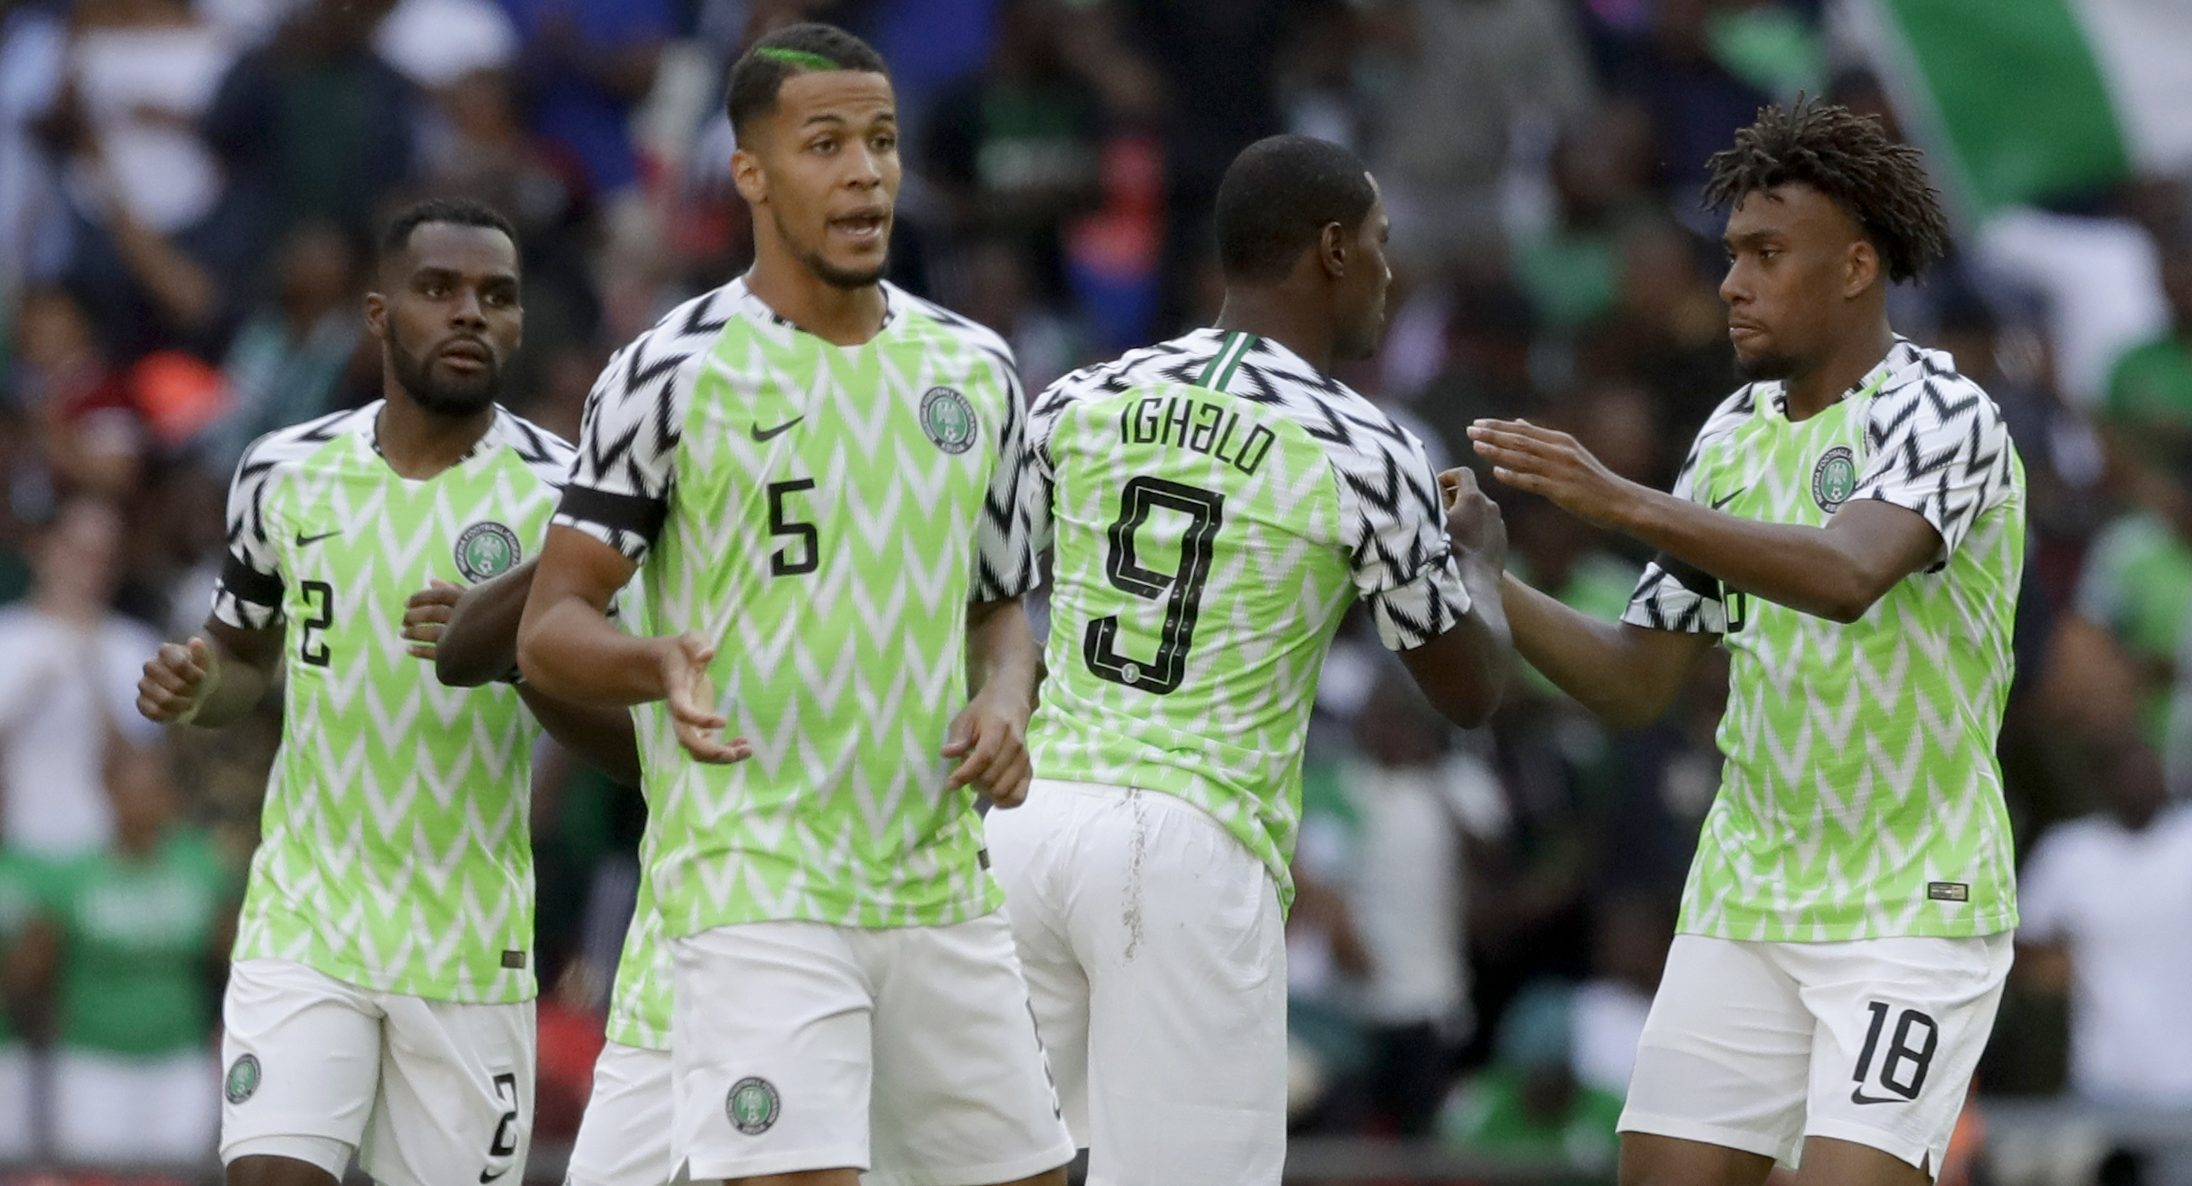 Nigeria´s jersey for this year´s World Cup has won praise from fans across the globe.